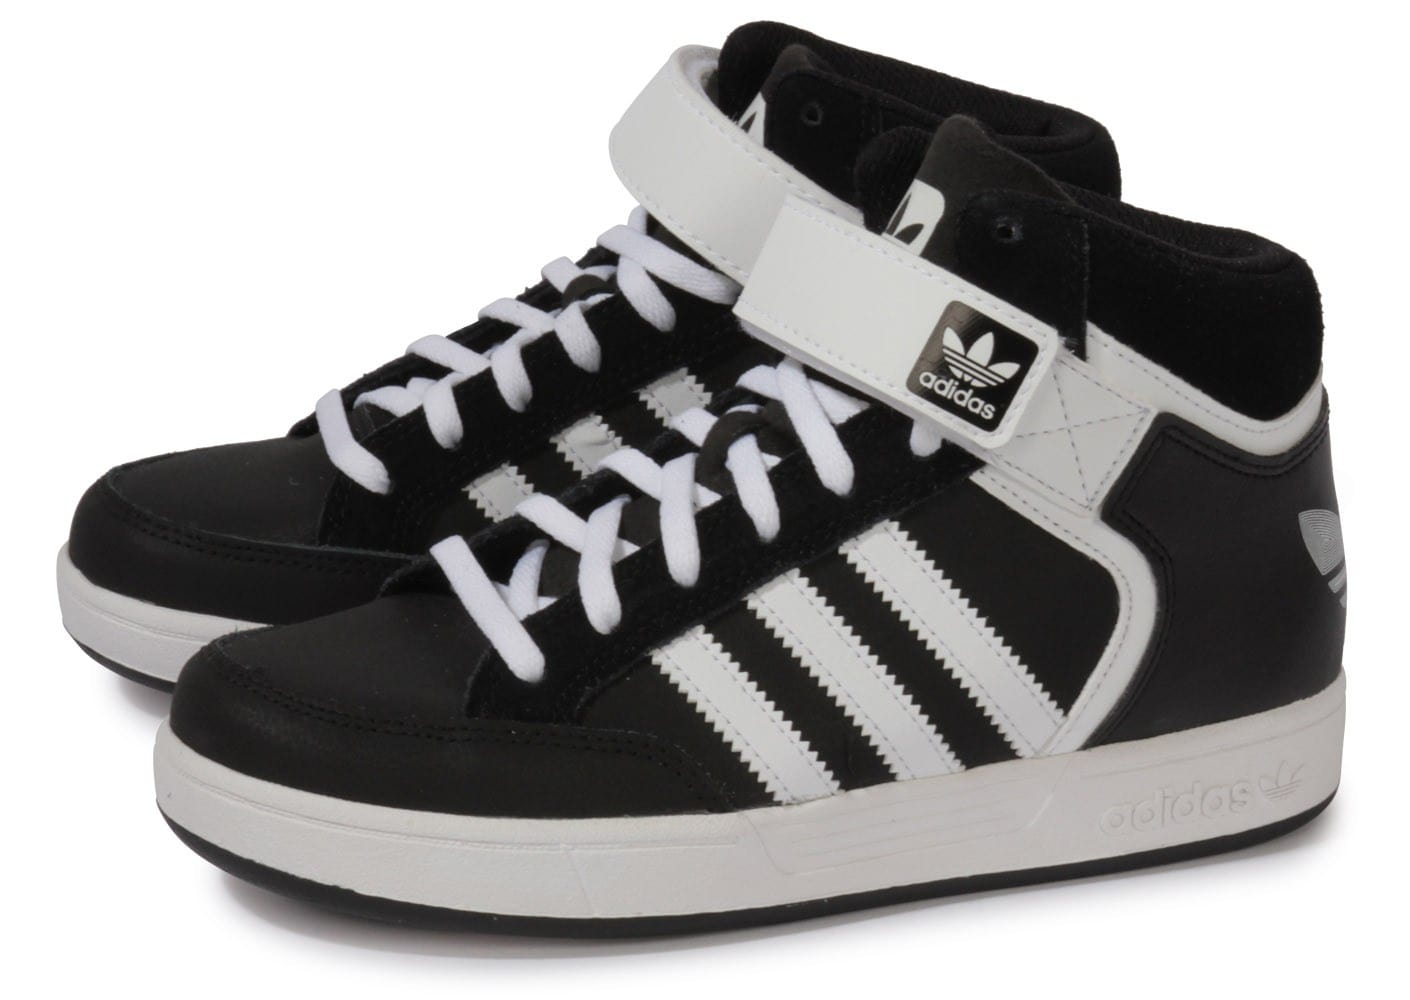 Junior Varial Chausport Adidas Mid Noire Chaussures O0wPNnk8X